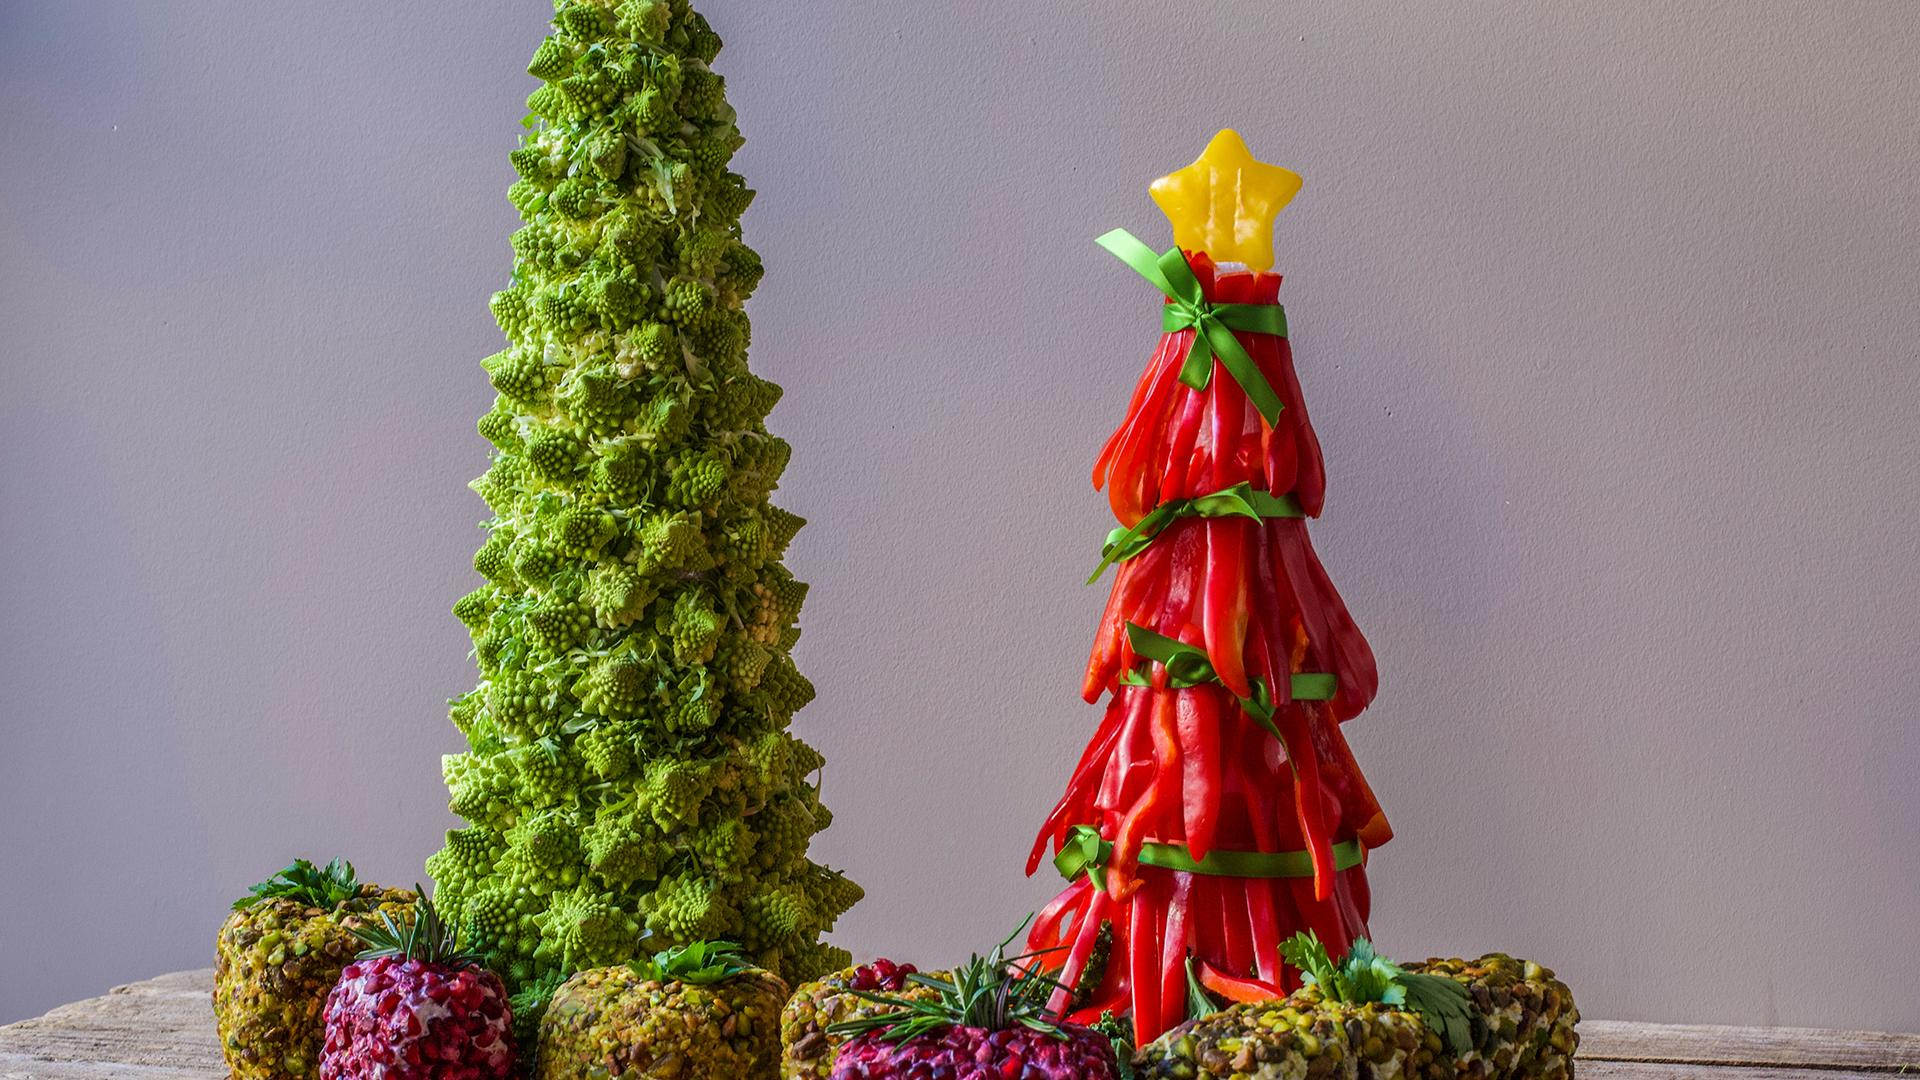 Rachael Ray Show Cheese Balls Christmas 2020 Appetizer Tree: Crudi Tree With Cheese Ball Presents | Rachael Ray